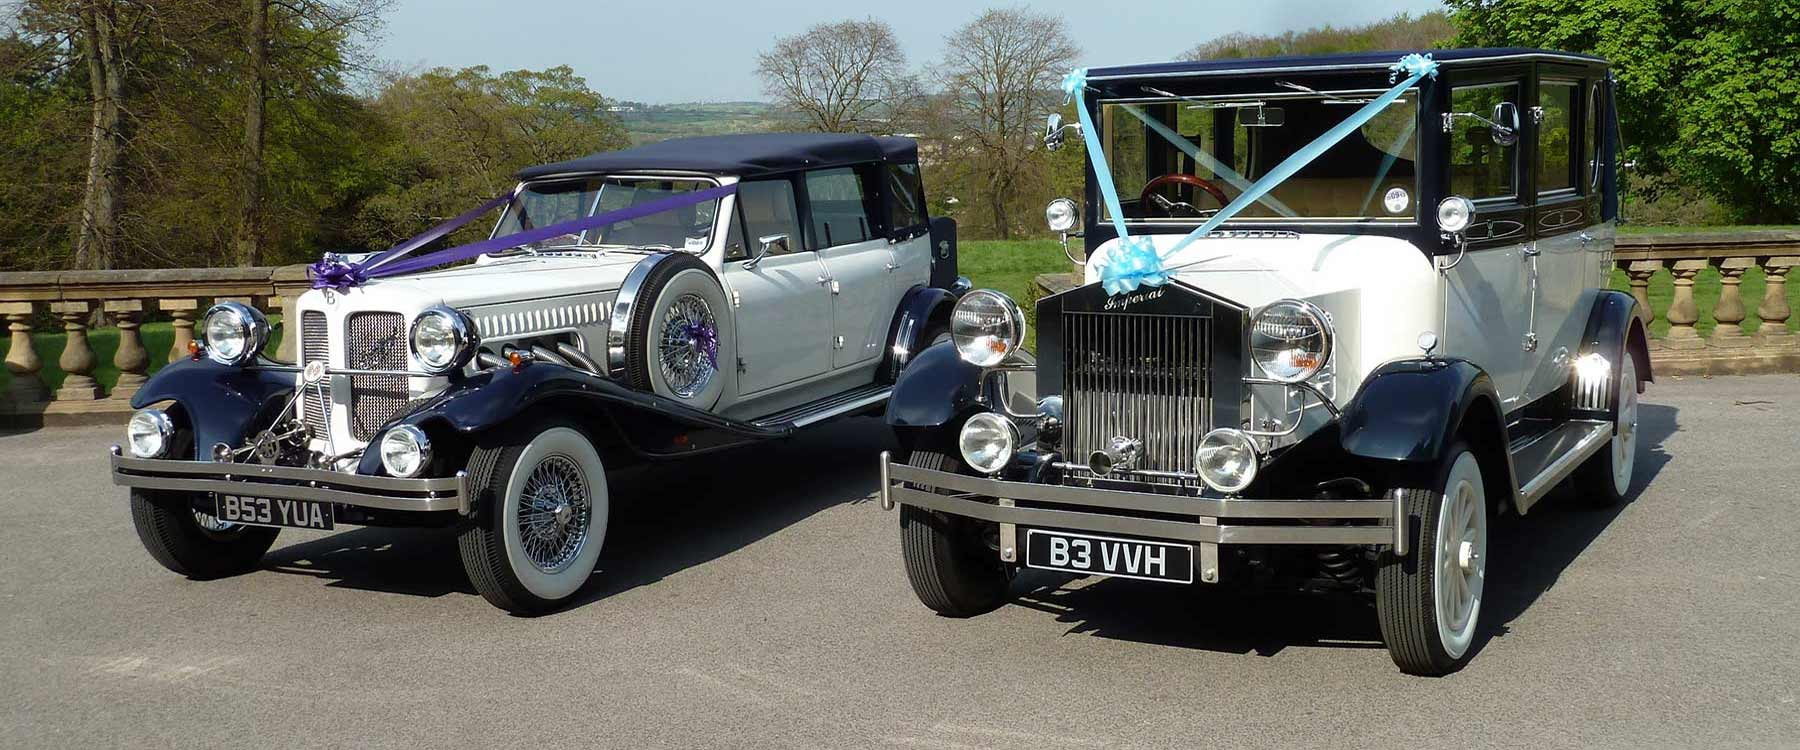 Wedding Car Hire Packages Westfield Chauffeur Drive